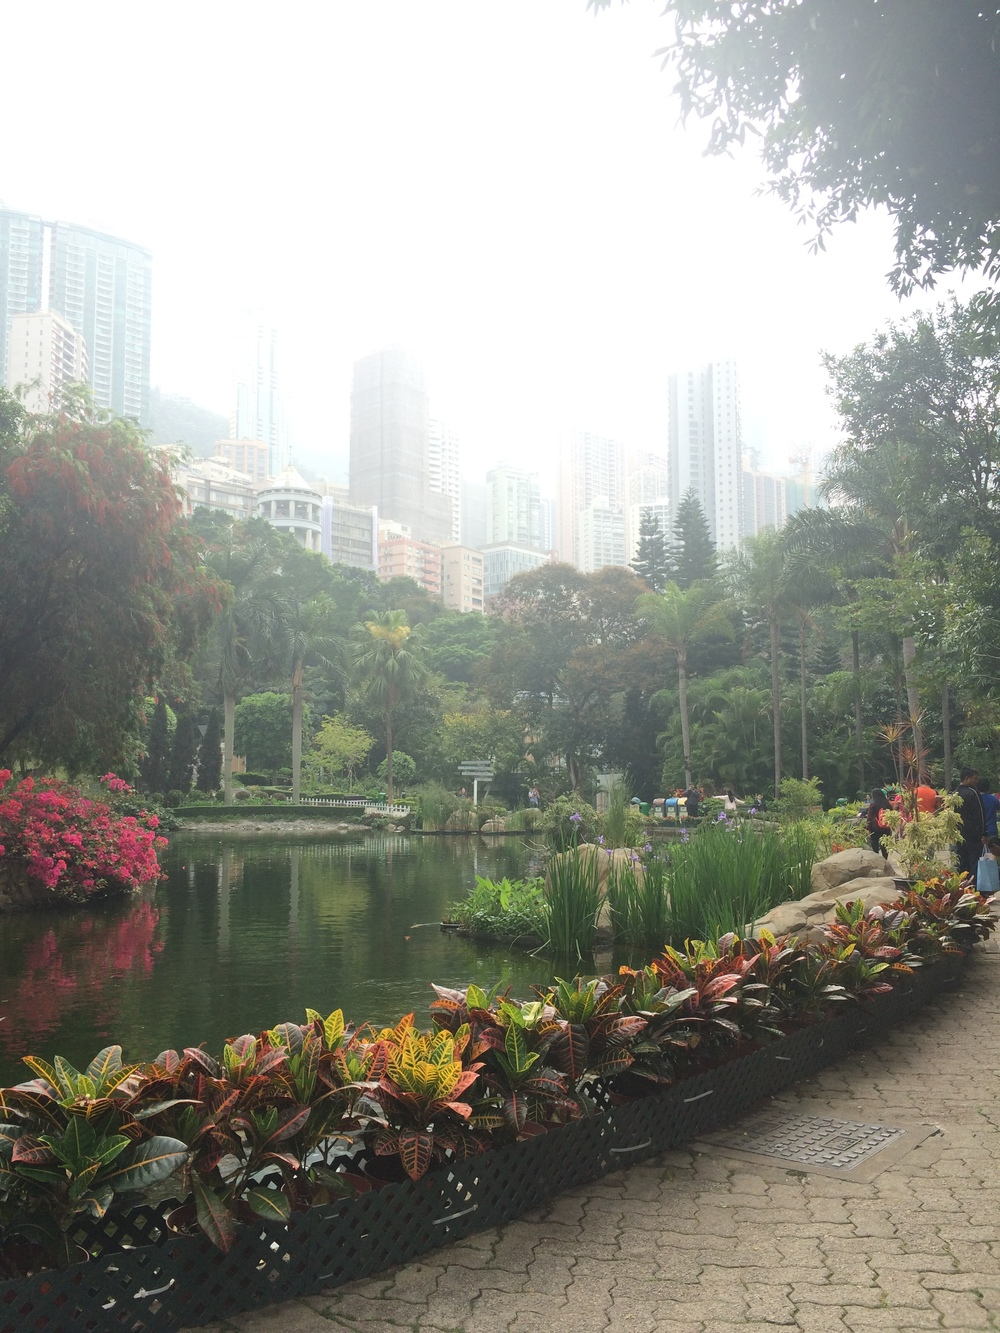 Hong Kong Park's Artificial Lake